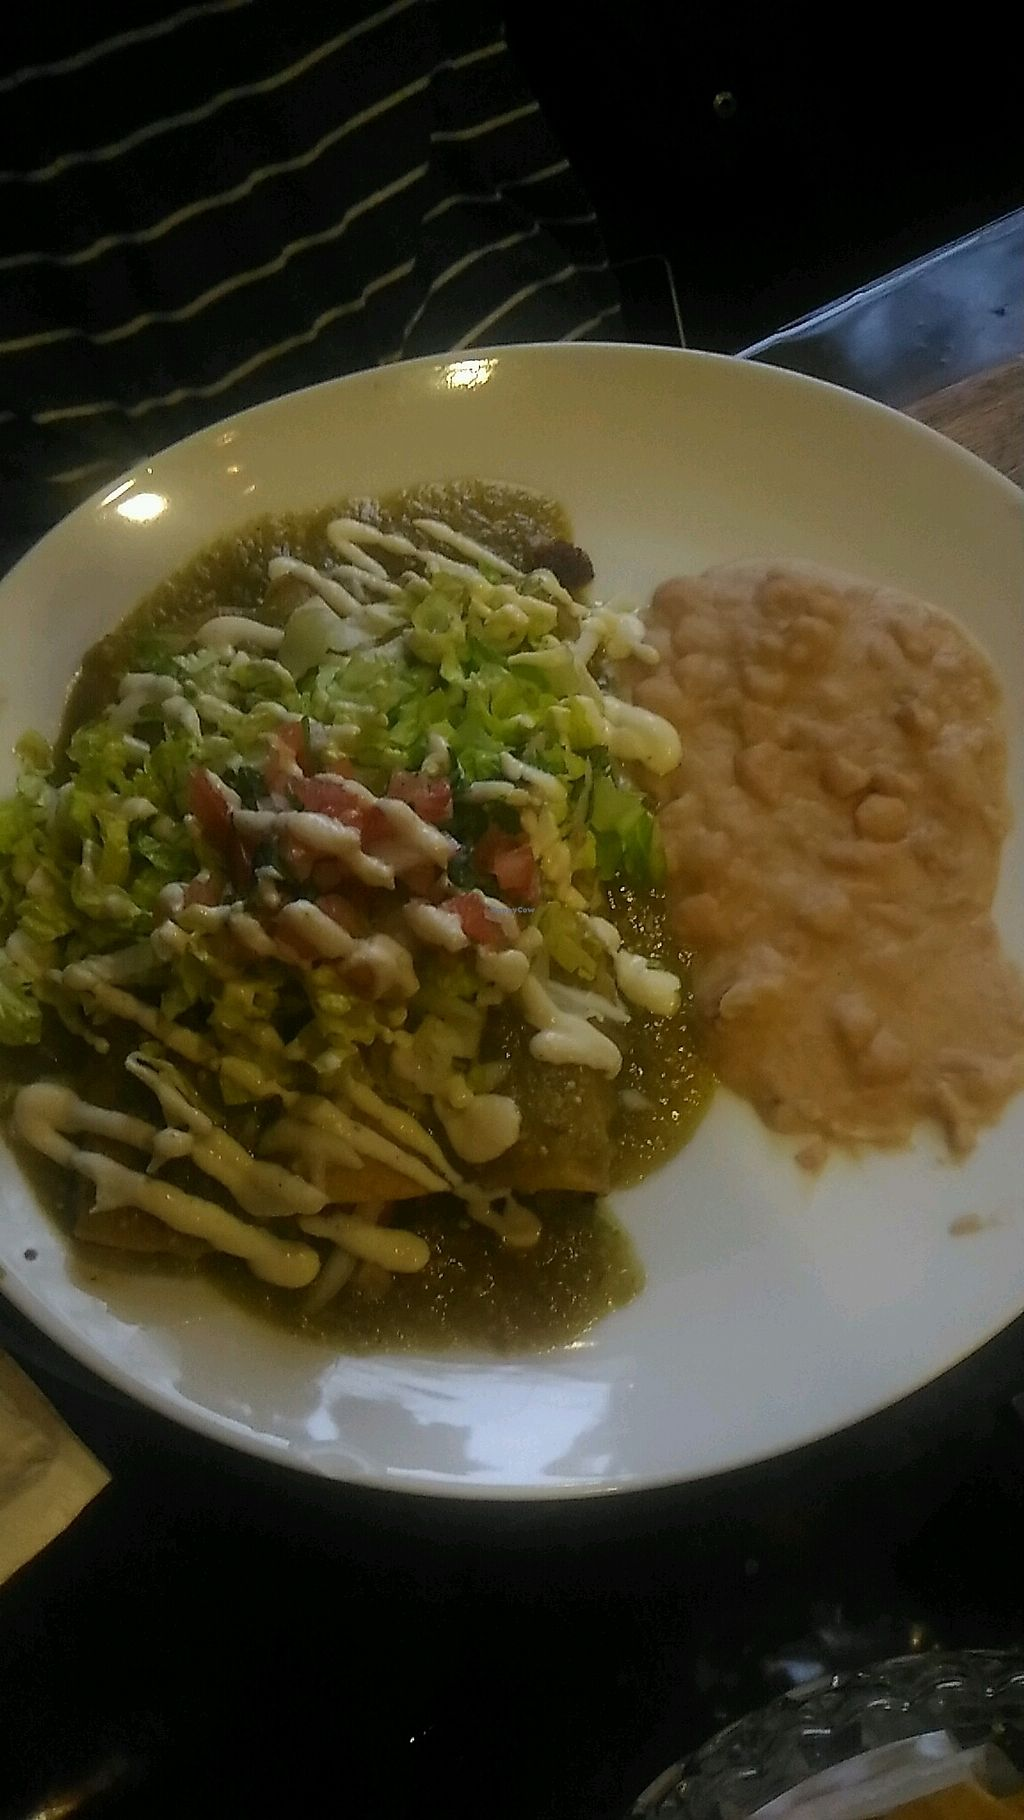 "Photo of Pancho's Kitchen  by <a href=""/members/profile/QuothTheRaven"">QuothTheRaven</a> <br/>vegan enchiladas <br/> March 26, 2018  - <a href='/contact/abuse/image/59571/376548'>Report</a>"